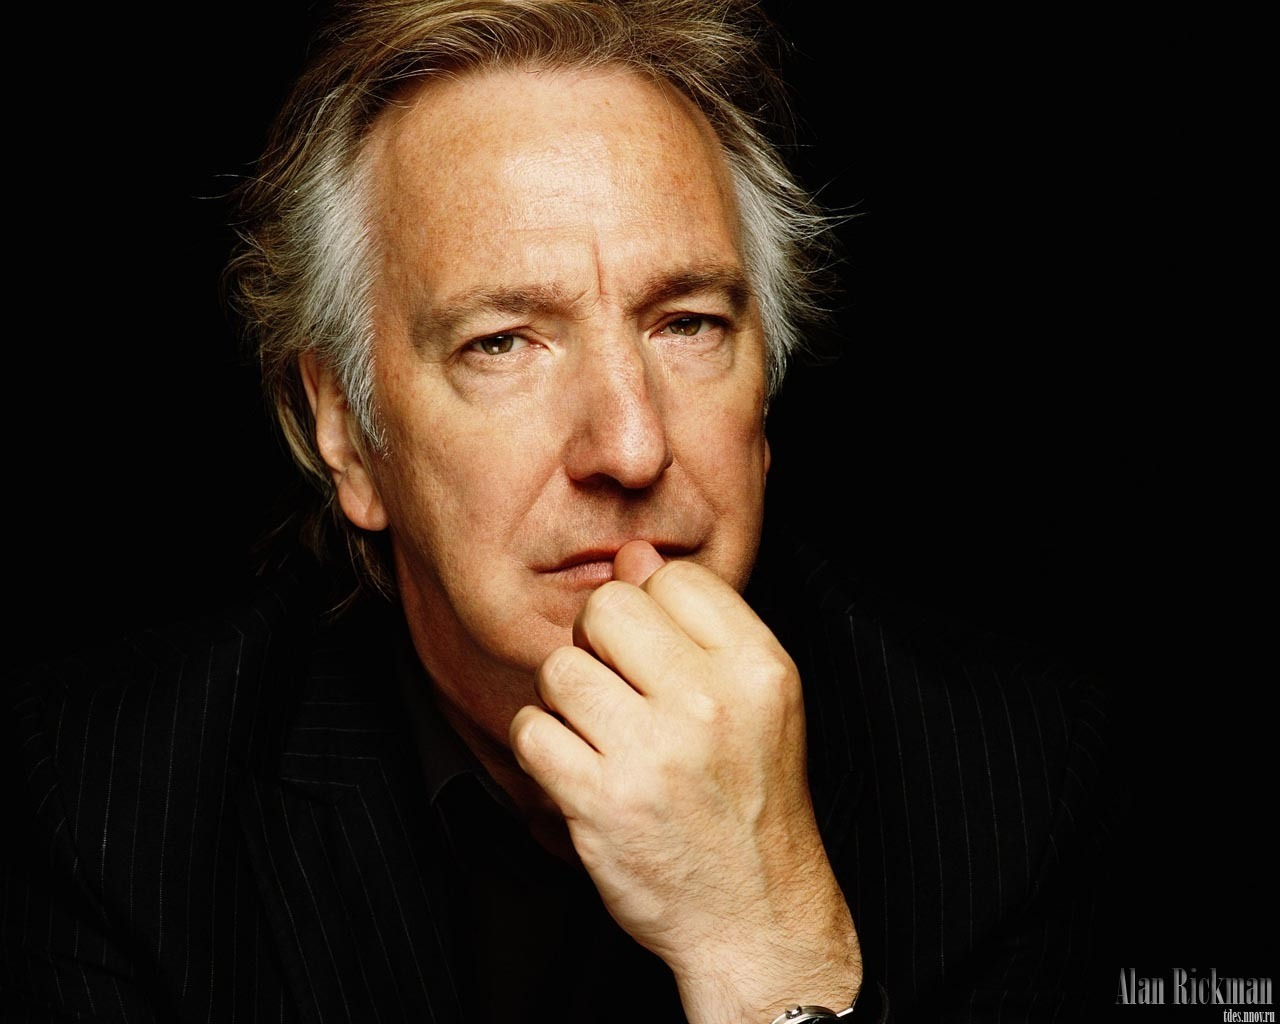 The 71-year old son of father Bernard Rickman and mother Margaret Doreen Rose Bartlett, 185 cm tall Alan Rickman in 2017 photo